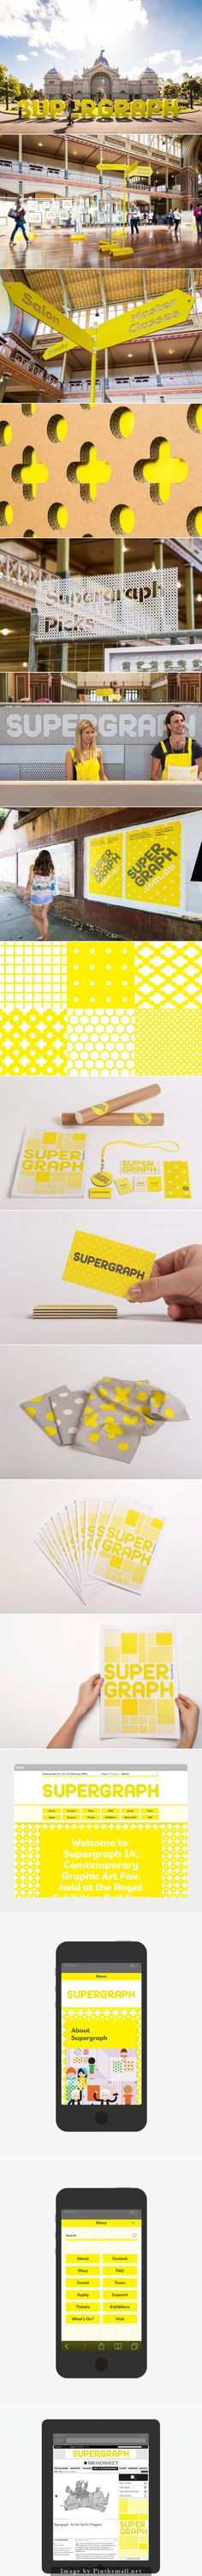 Supergraph identity design